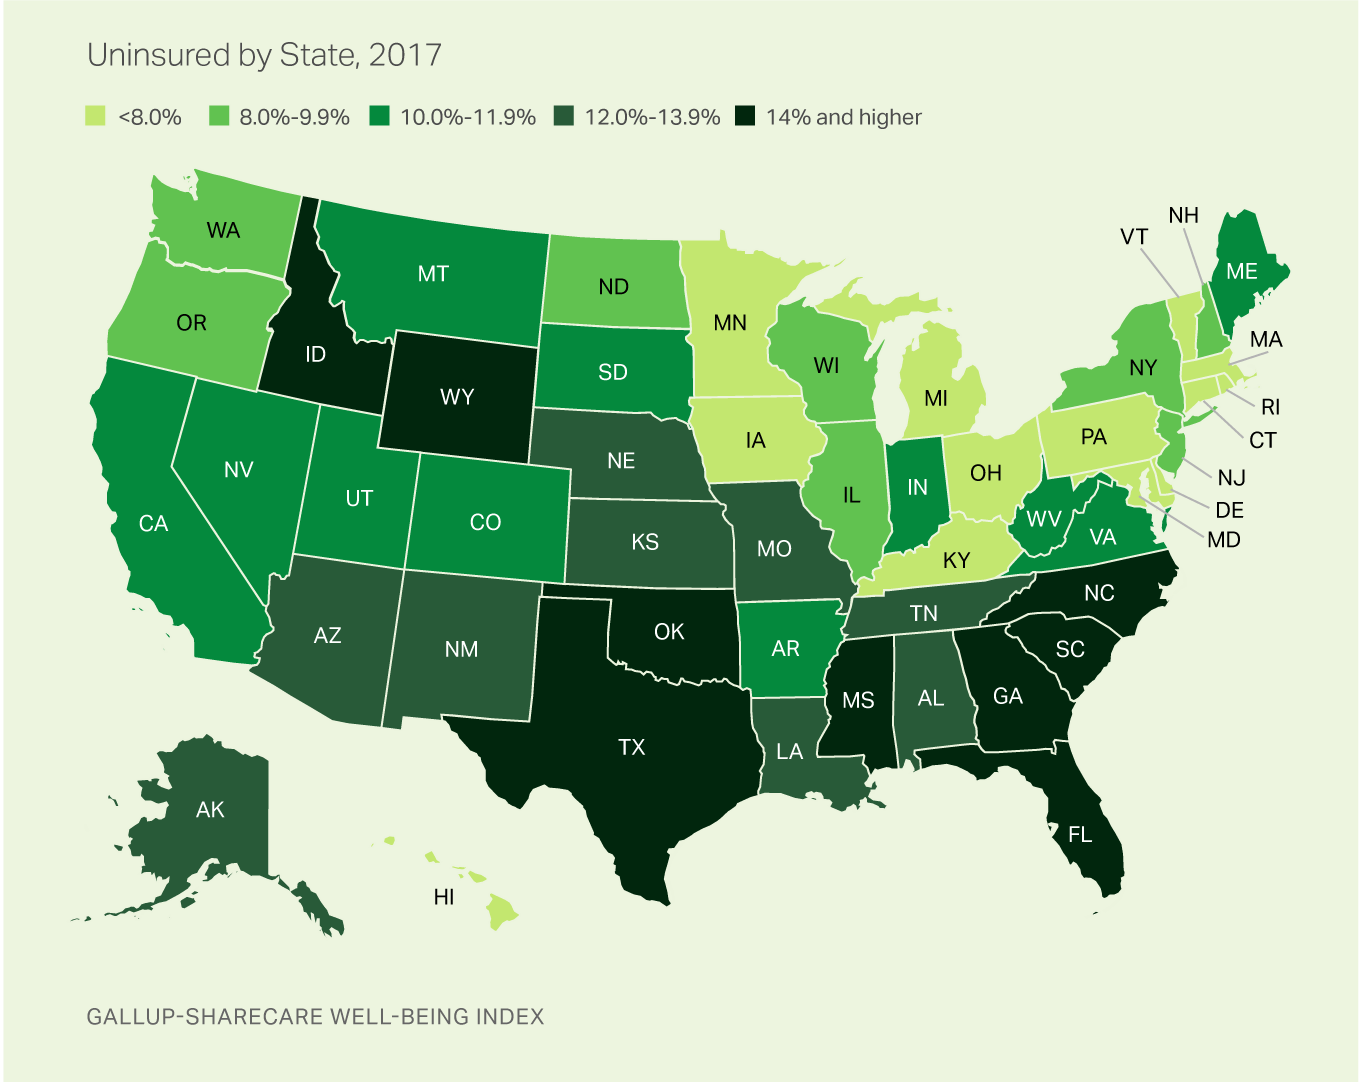 Medicaid Expansion States Map 2017.Uninsured Rate Rises In 17 States In 2017